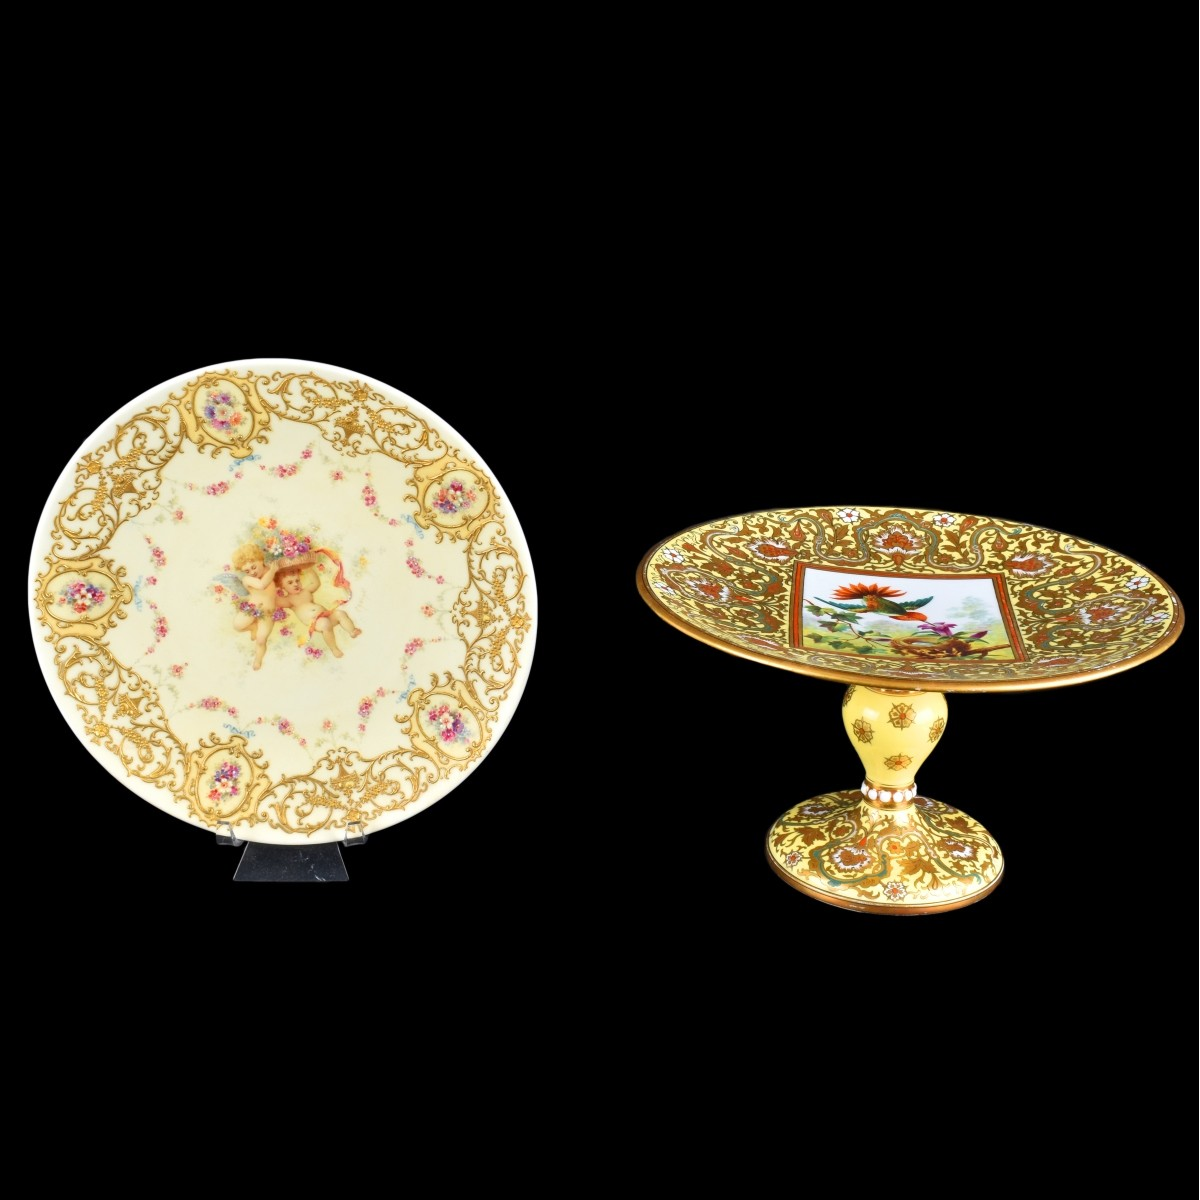 Two Decorative French Porcelain Table Top Items